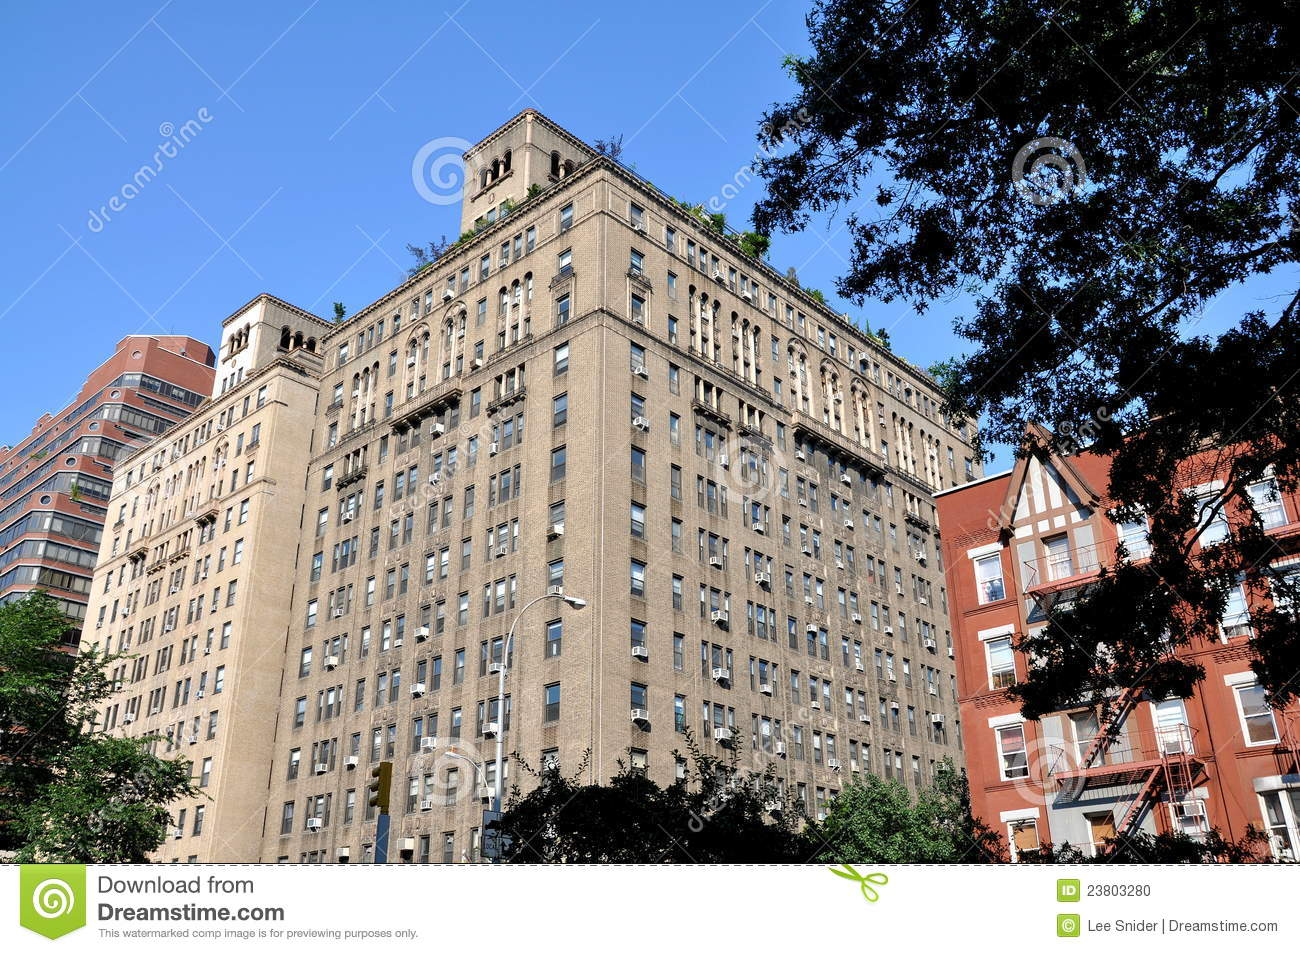 Nyc upper west side luxury co op building stock photo for New york upper west side apartments